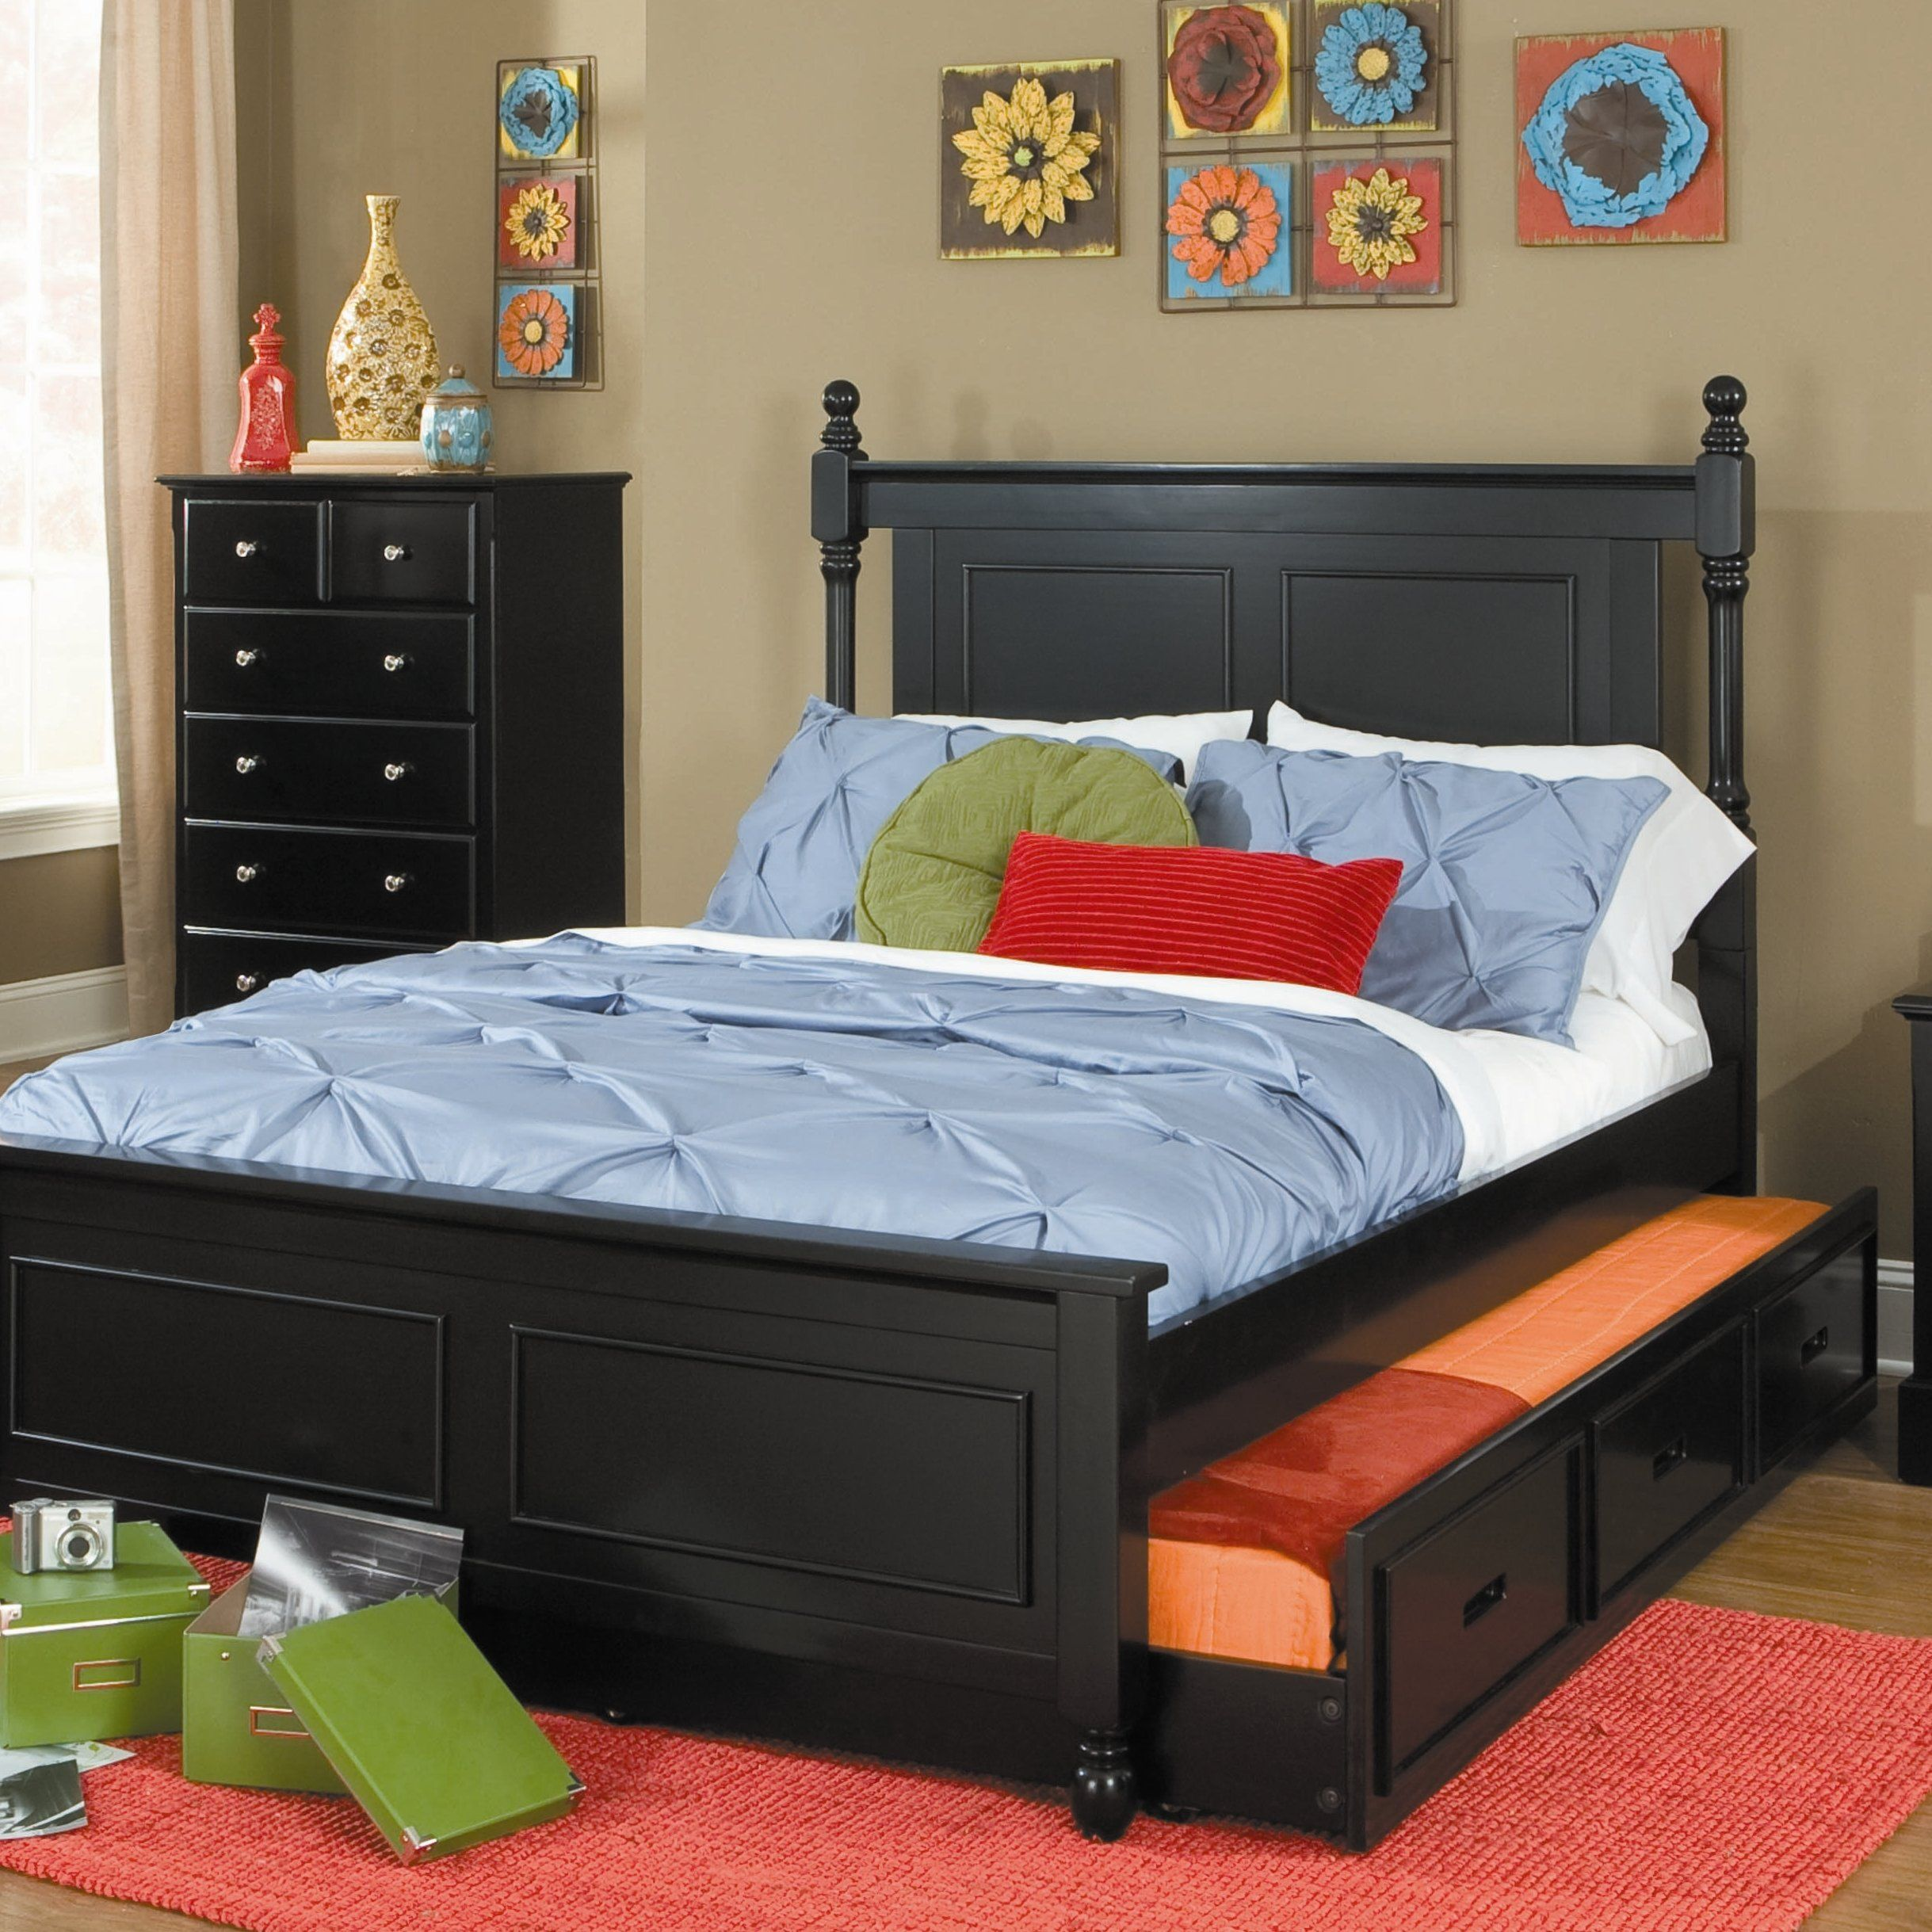 Trundle Beds Convert To Double